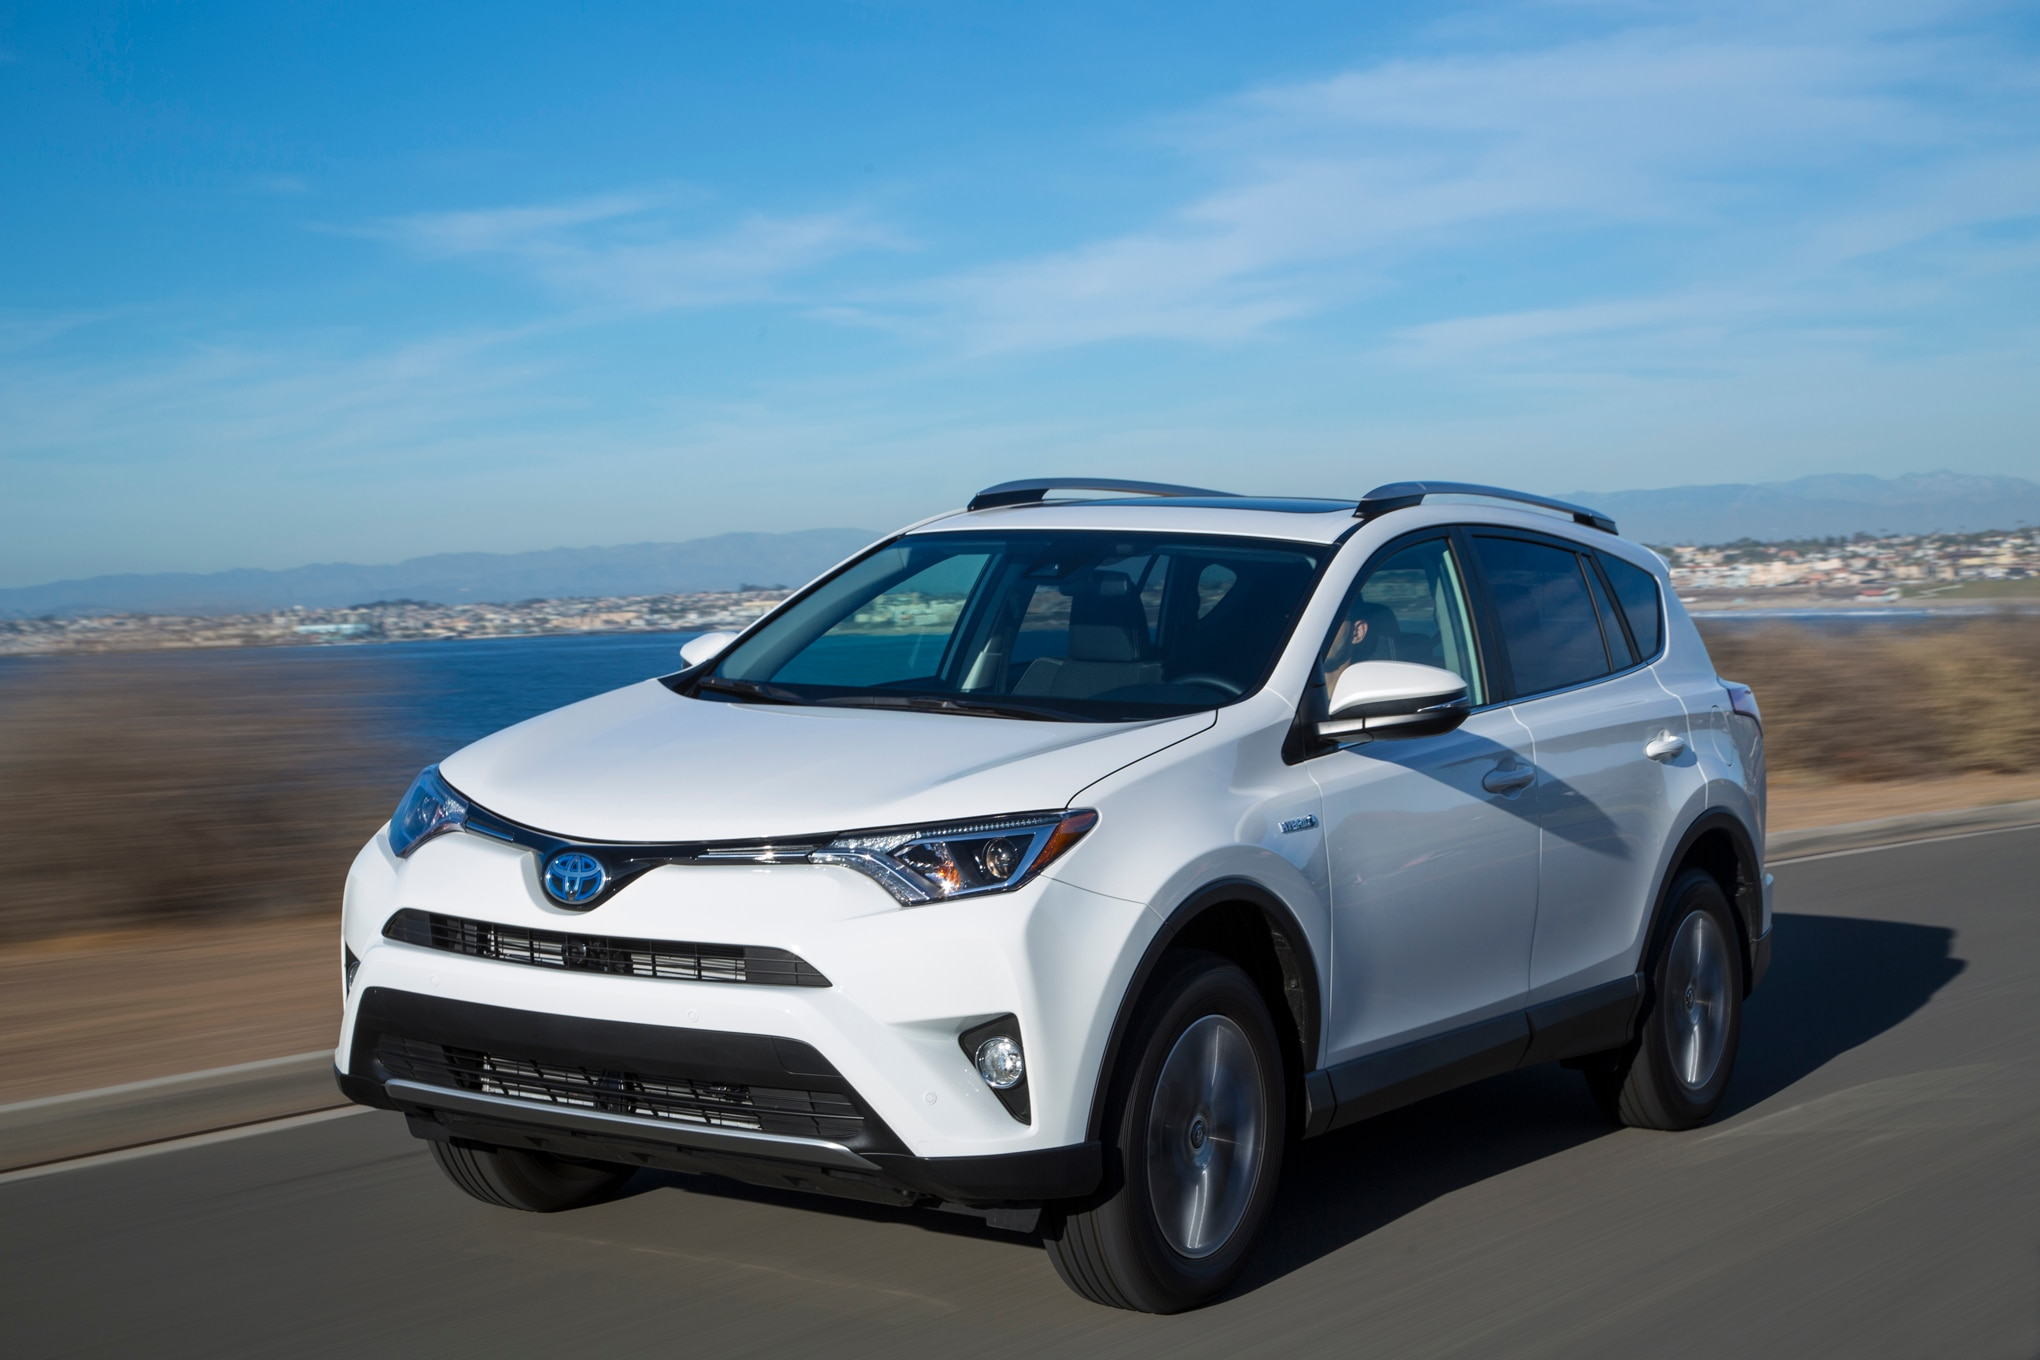 2016 Toyota RAV4 Hybrid front three quarter in motion 26